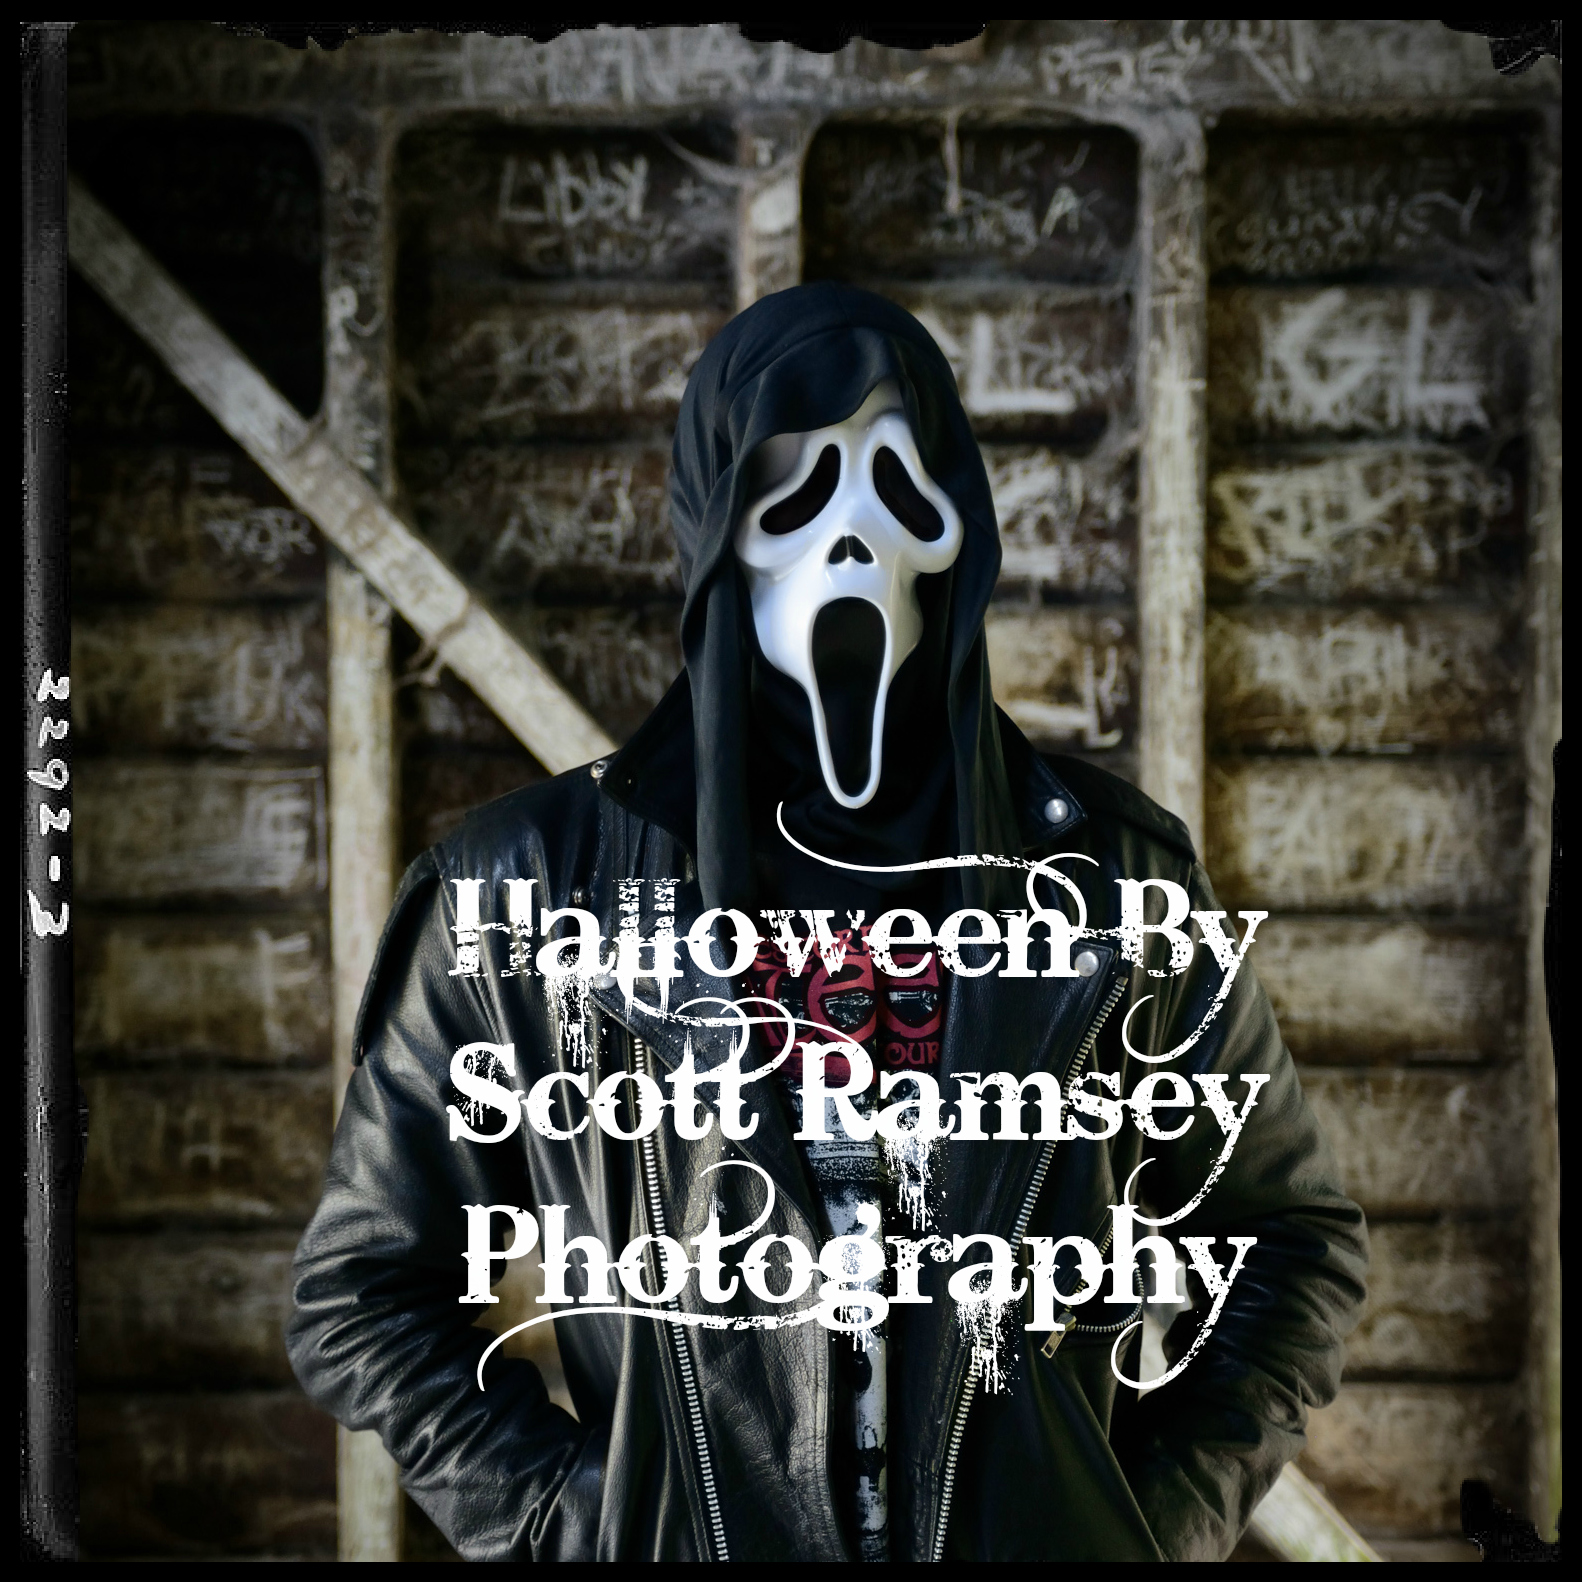 A Halloween photo shoot inspired by cult scary movies and a fashion photography shoot.